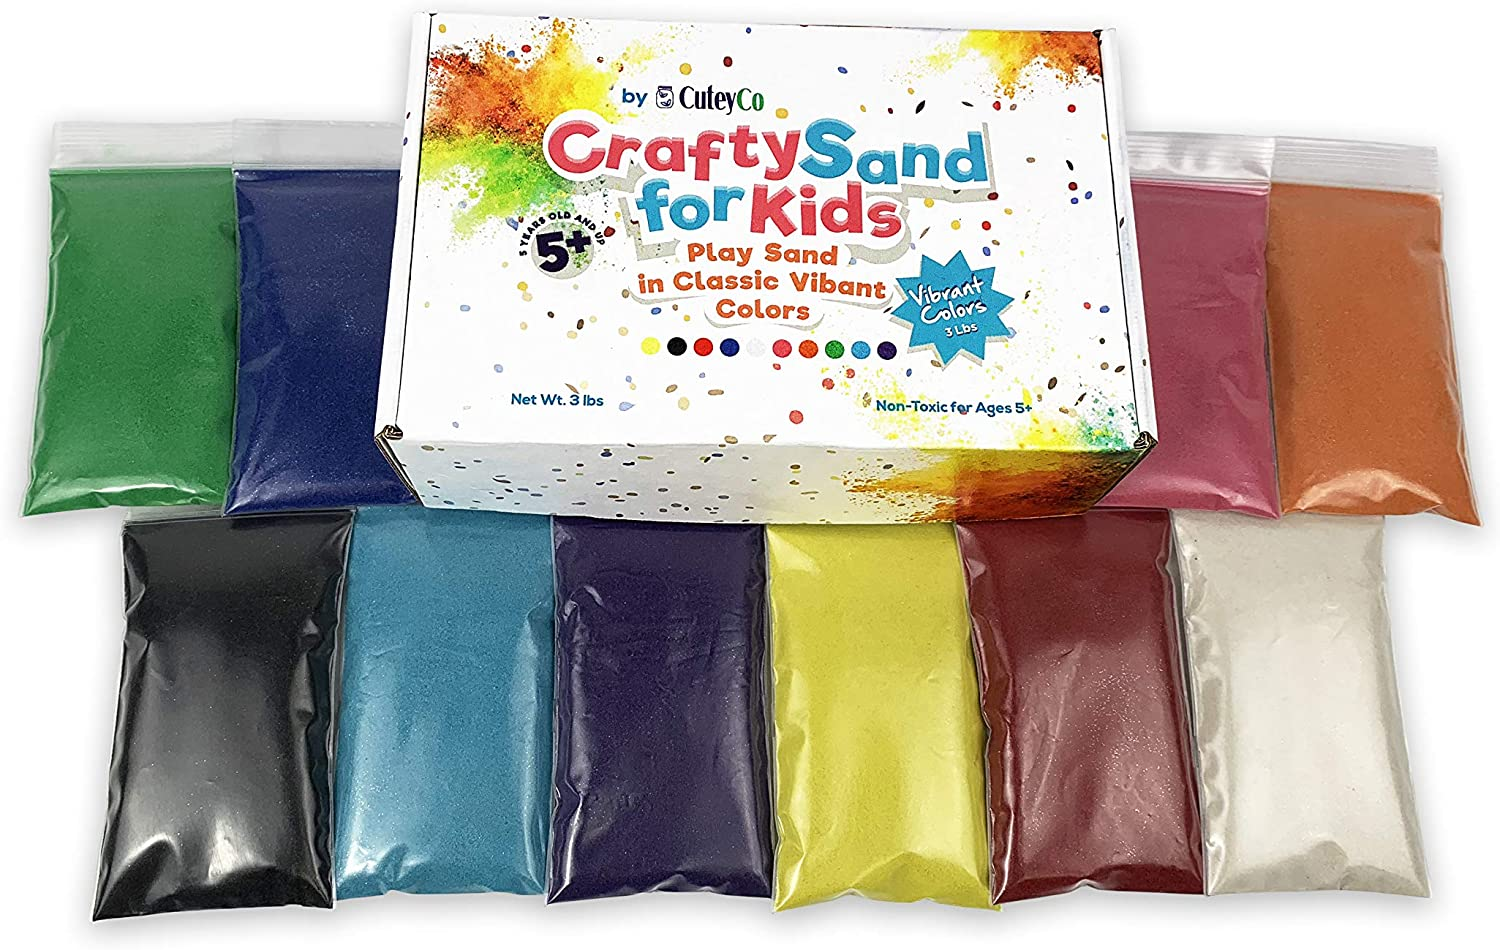 3 lbs of Vibrant Craft Sand and Play CuteyCo Crafty Sand for Kids 10 Colors